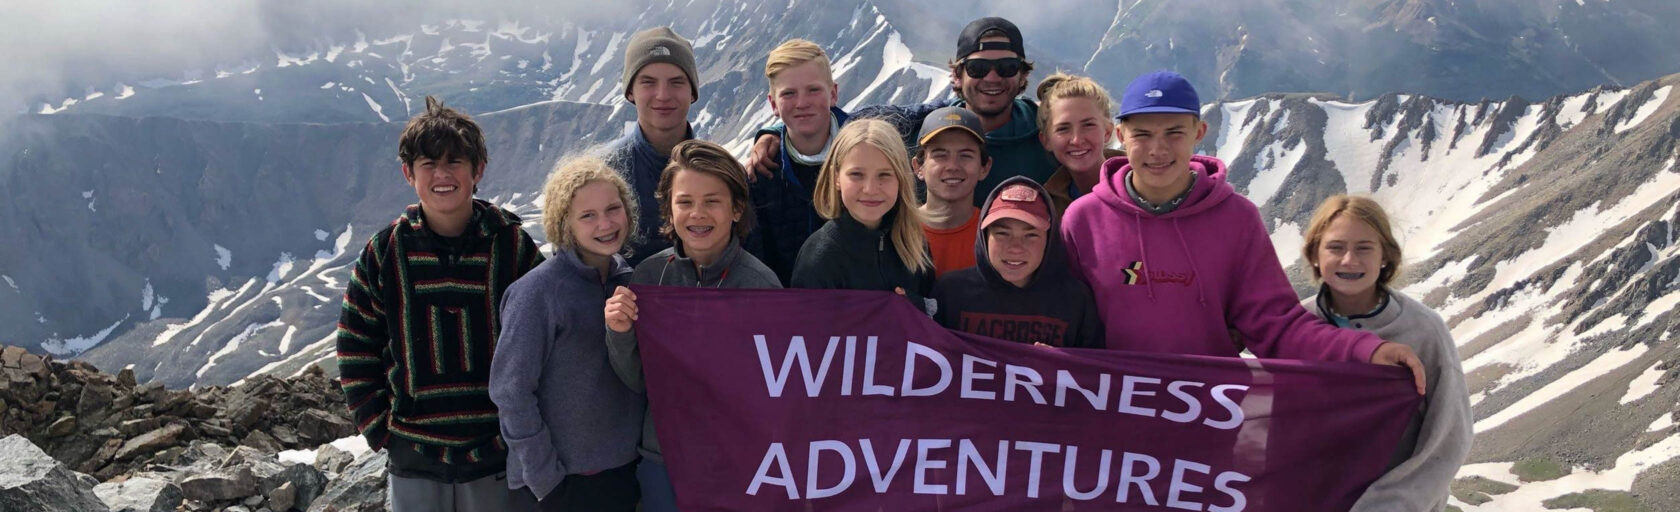 The Rockies Adventurer group with WA flag